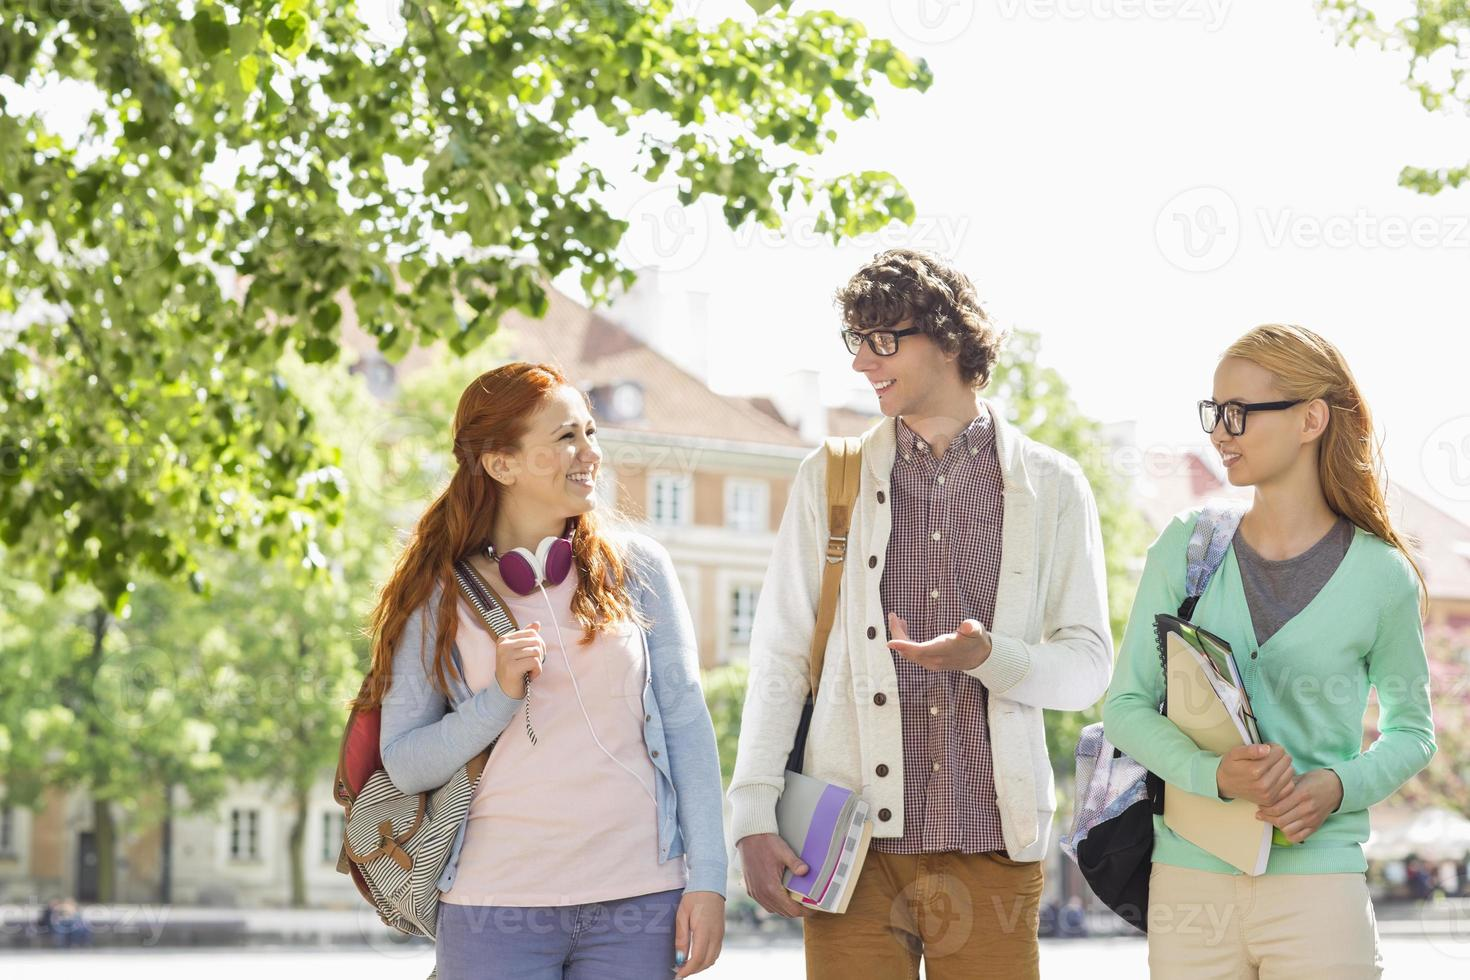 Young college students talking while walking on street photo